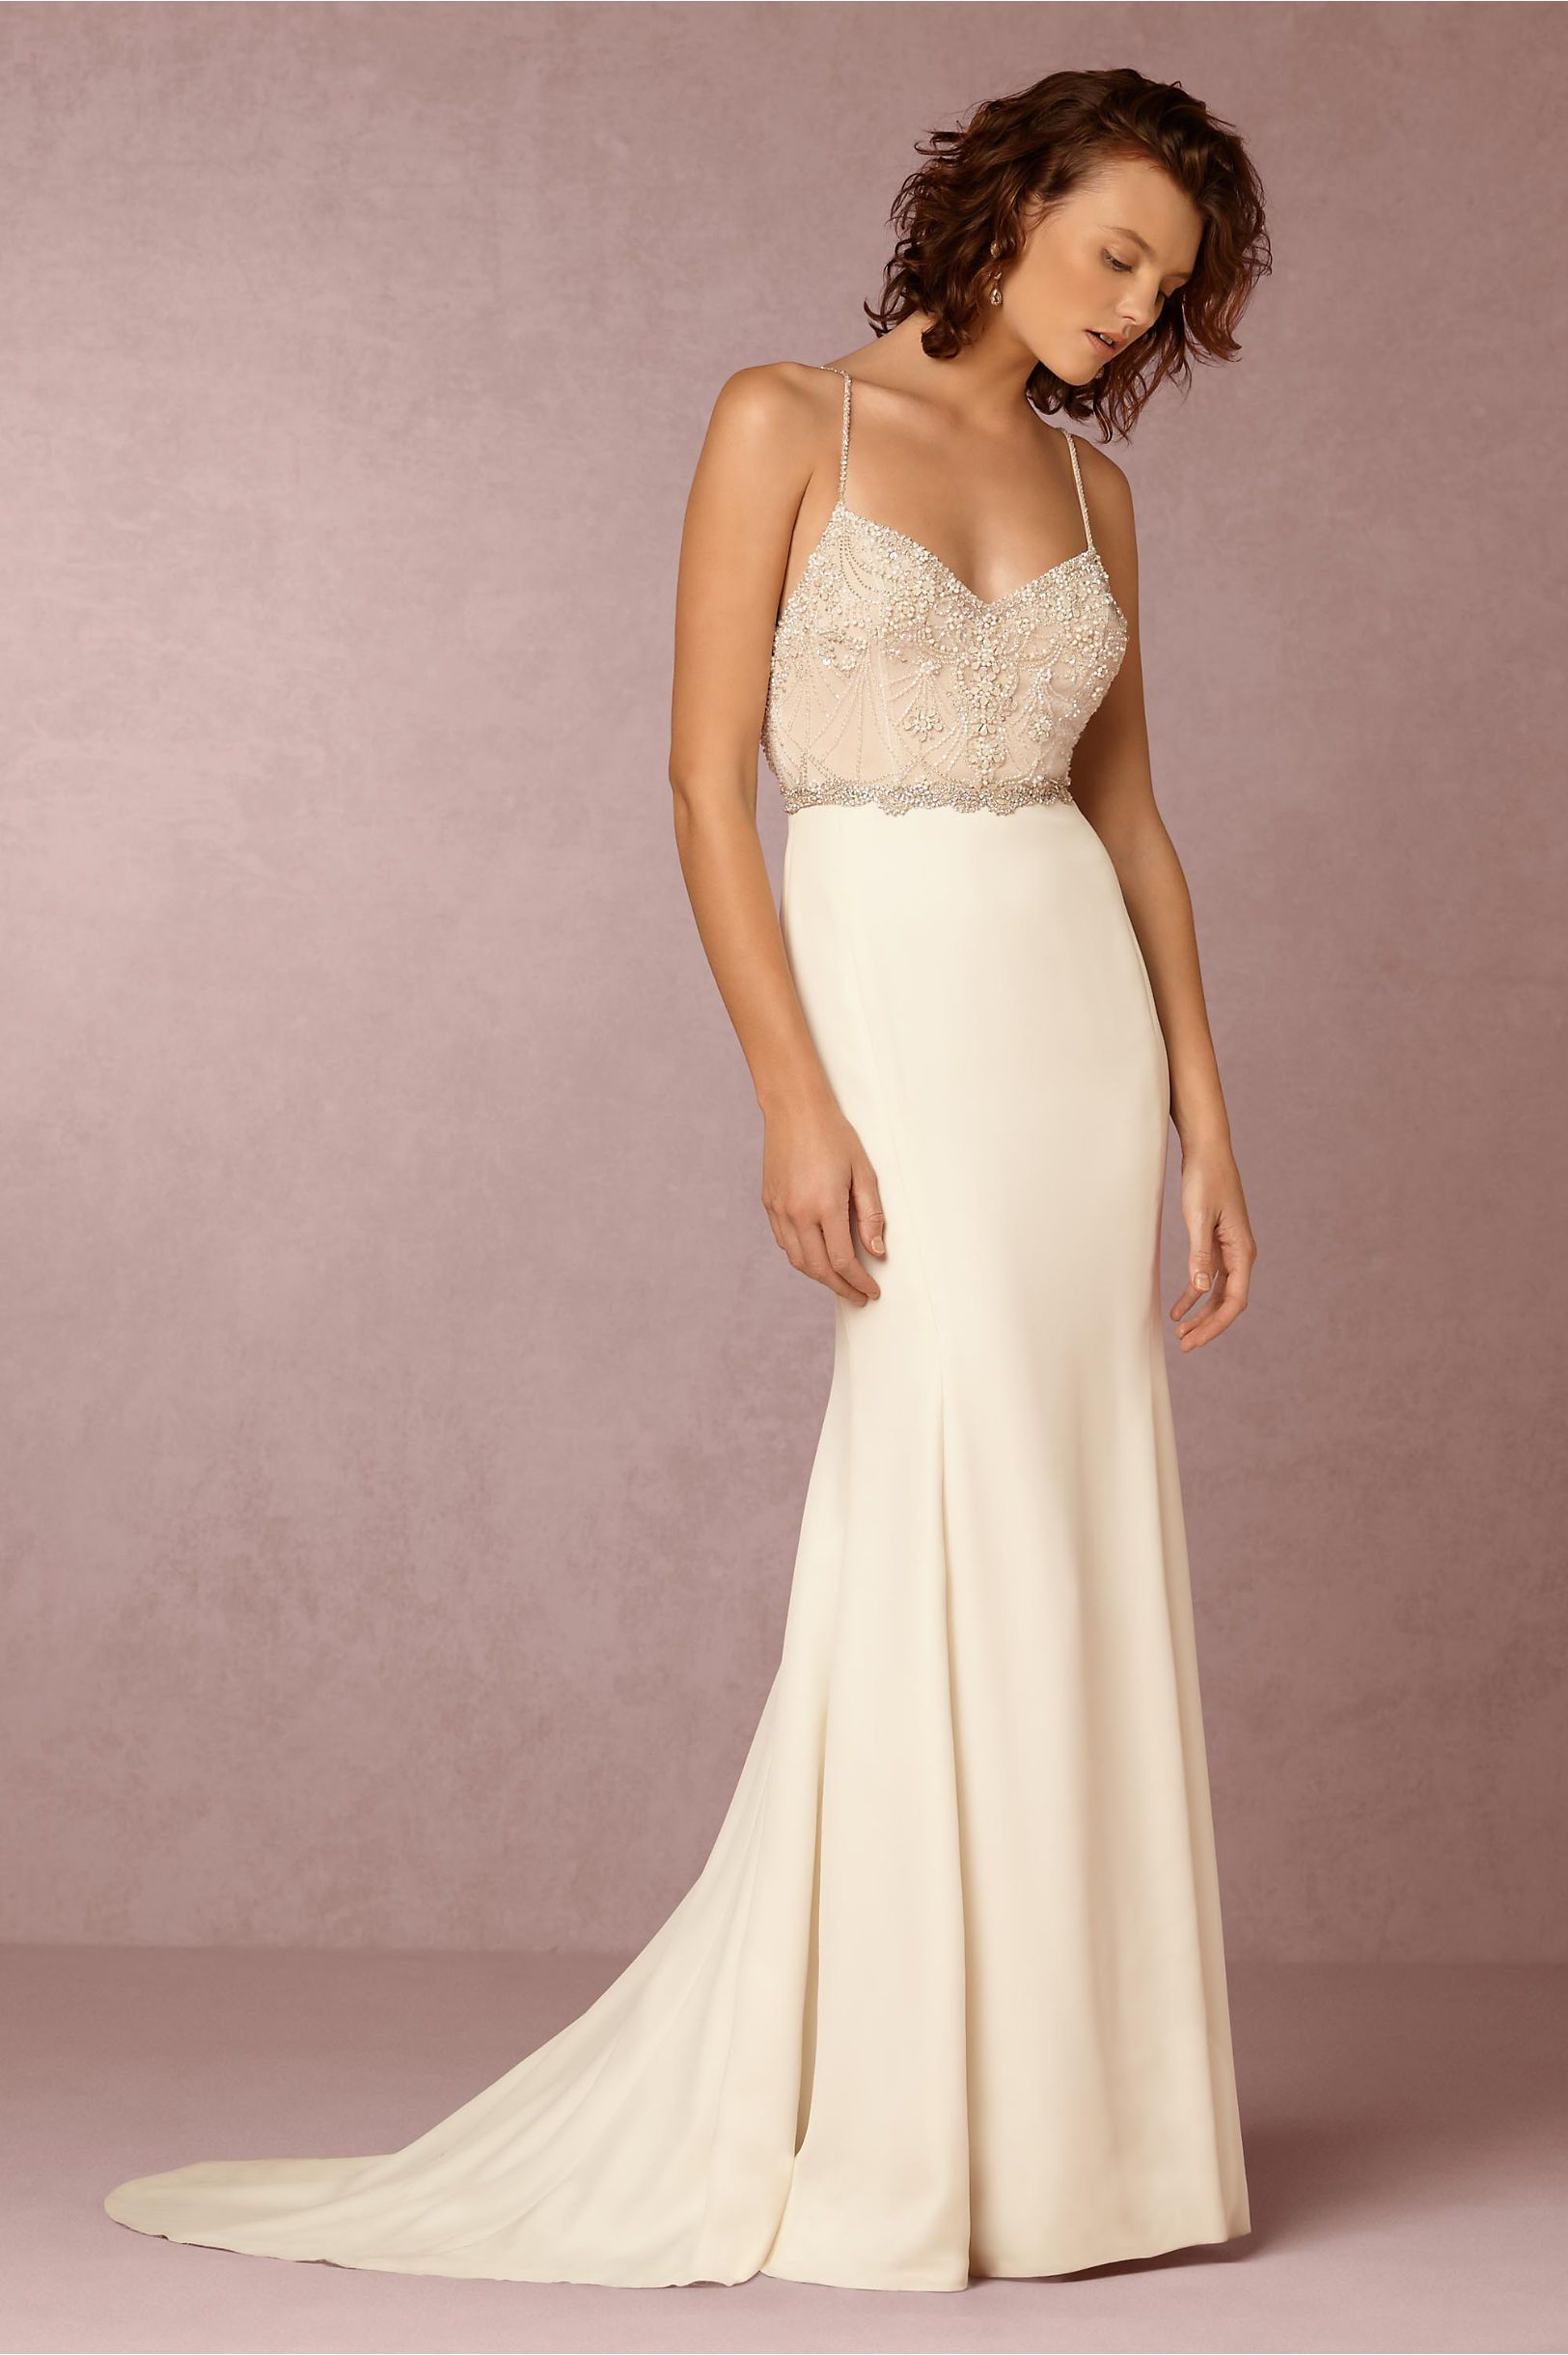 9c0bed16641f Clean modern wedding dress with subtle embellishment | Irene Wedding Gown  from BHLDN